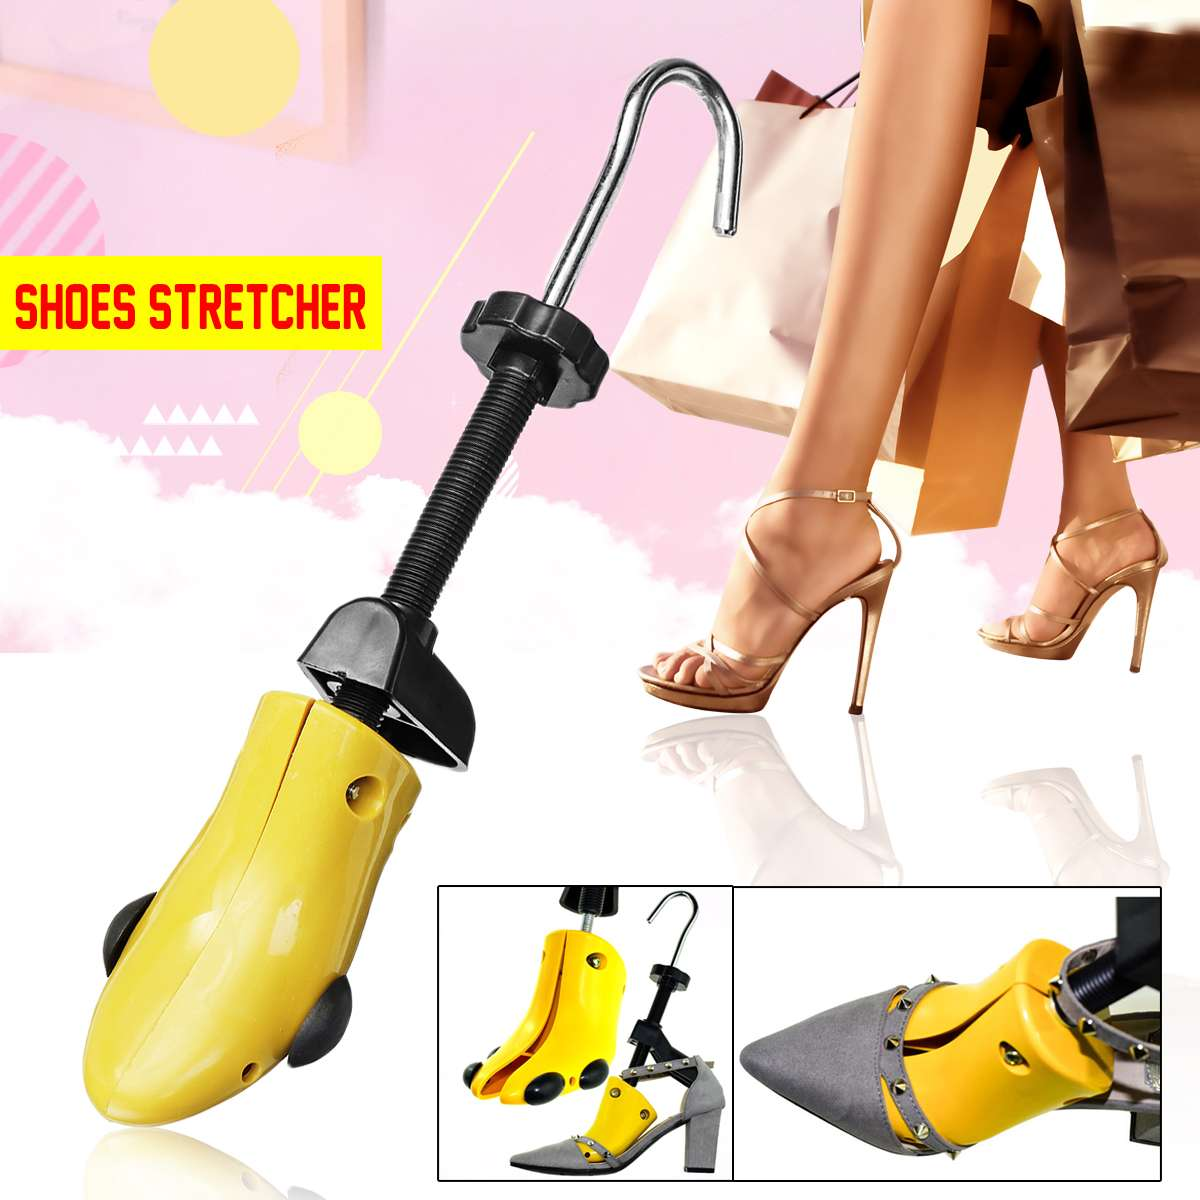 Size S/M/L 28-48 Men Womens 2-Way Adjustable Shoes Stretcher Heels Boots Trees Shaper Expander Unisex Plastic Maintain Shape